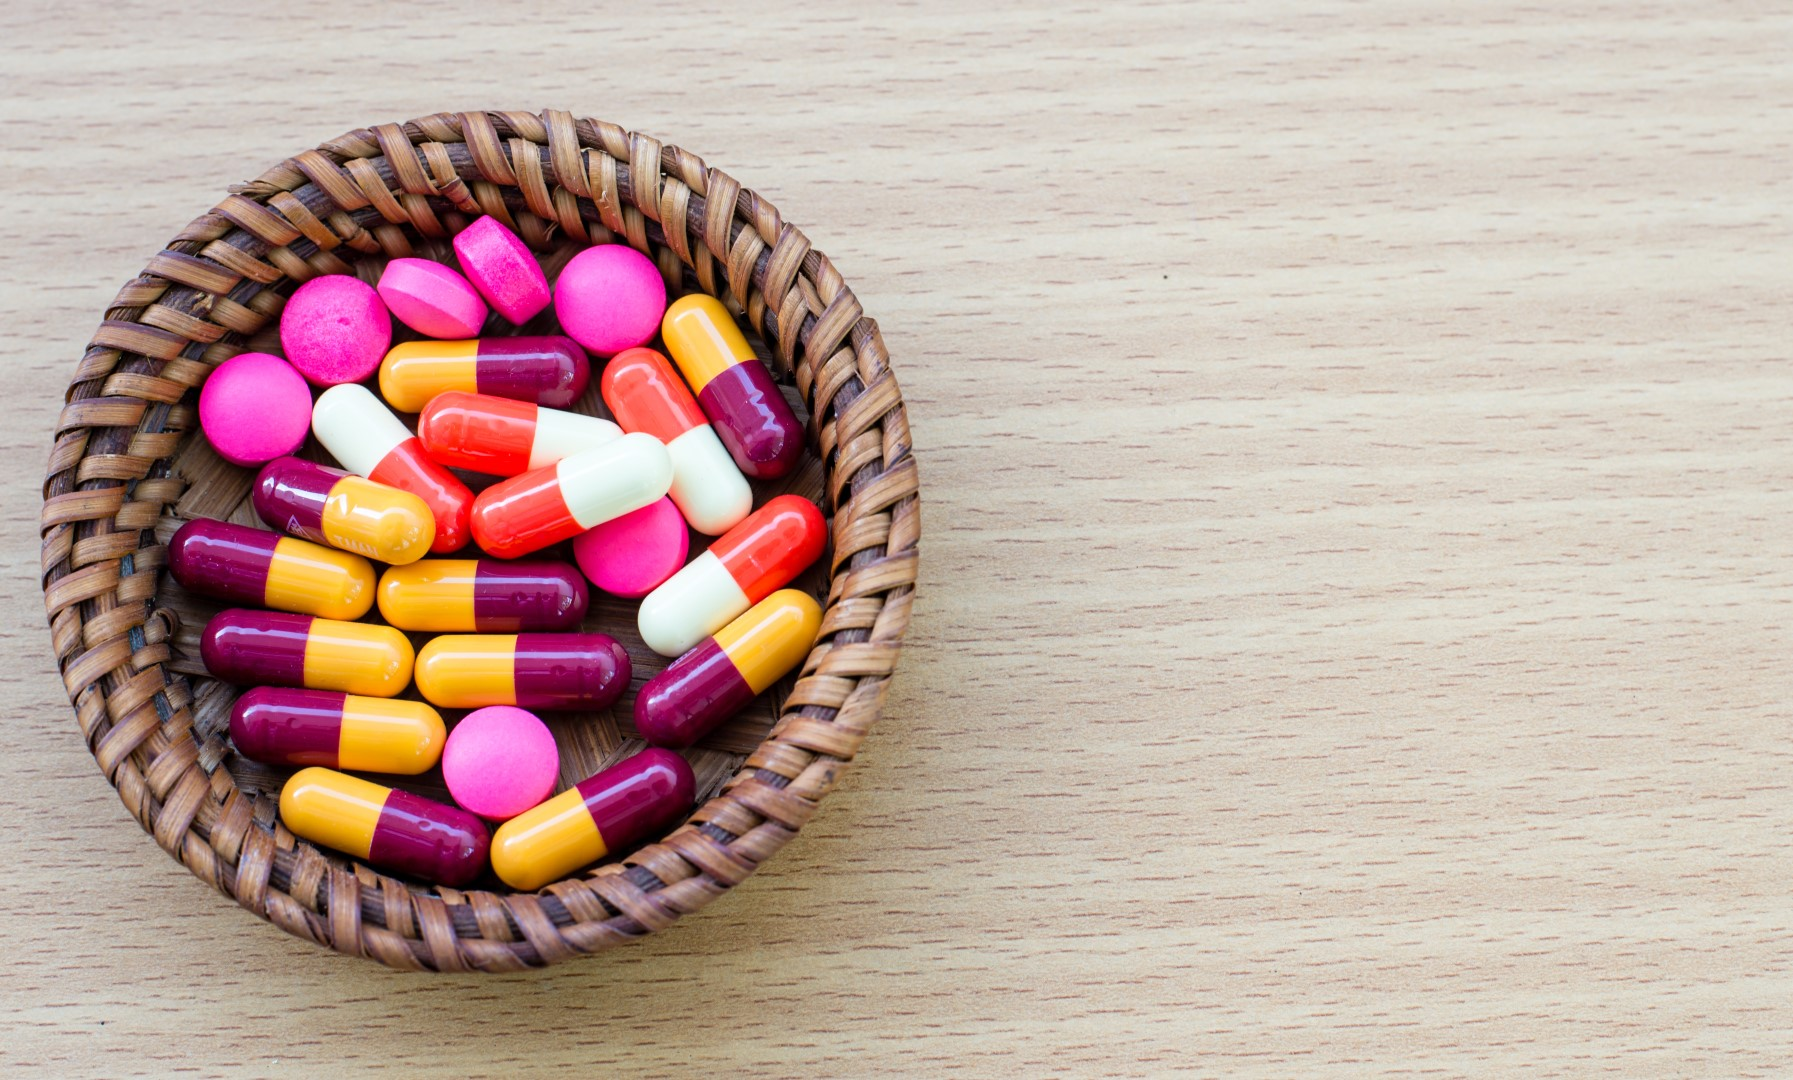 THE MUTUAL RELIANCE INITIATIVE: A NEW PATH FOR PHARMACEUTICAL INSPECTIONS IN EUROPE AND BEYOND